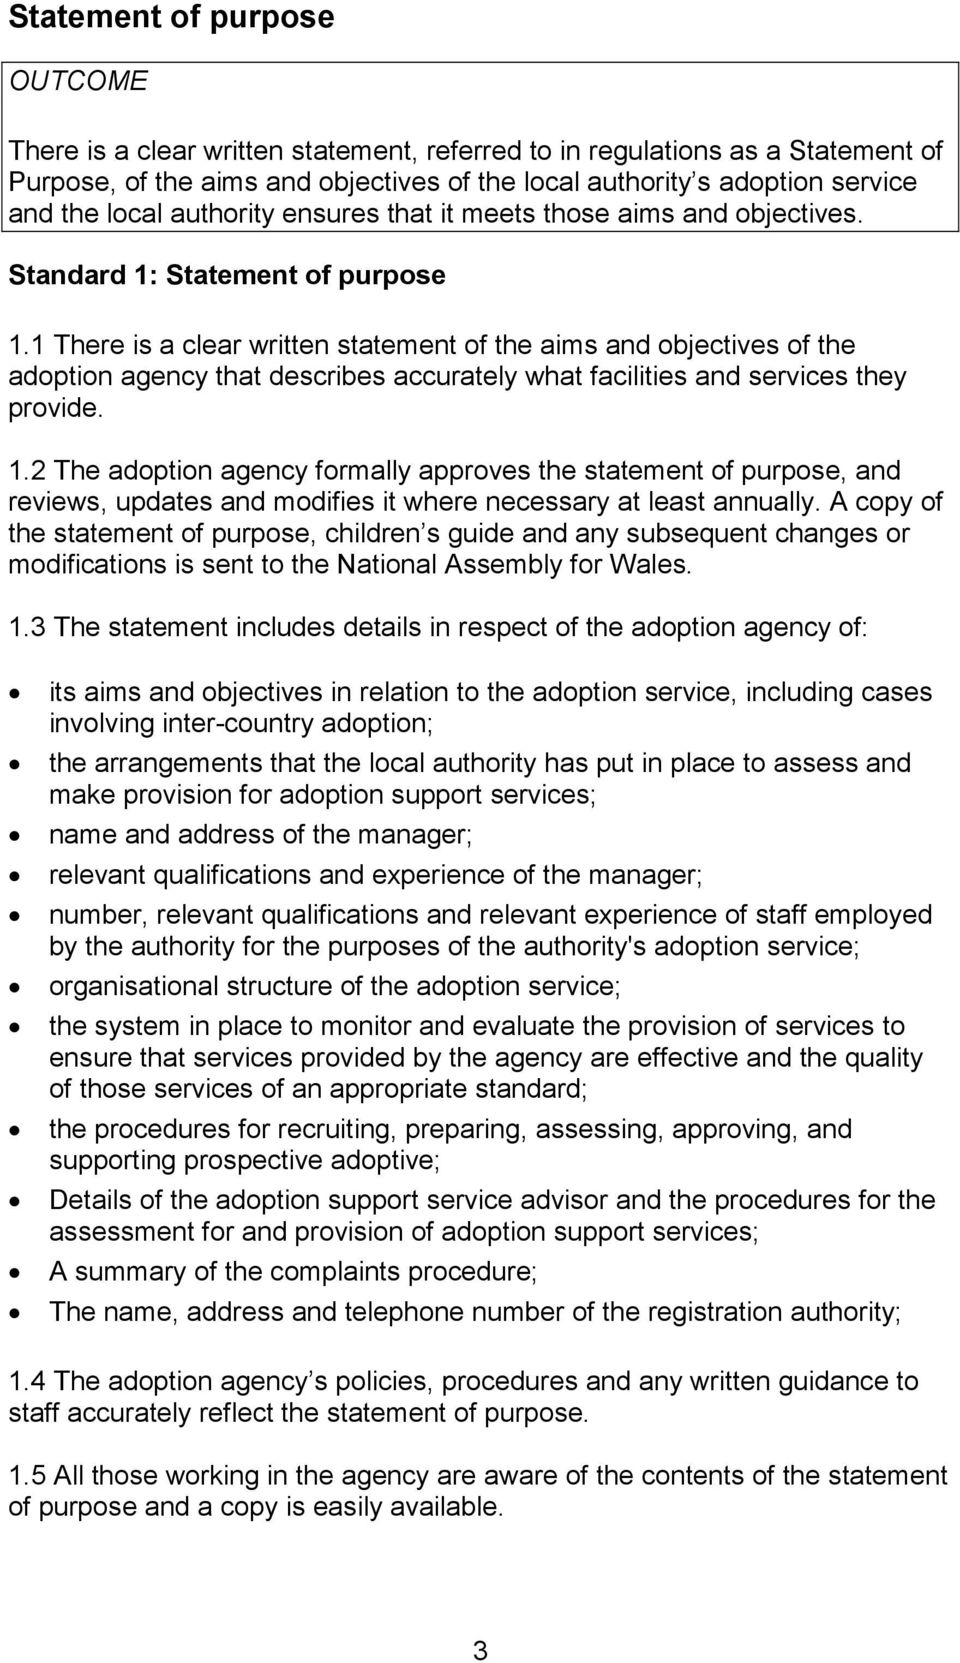 1 There is a clear written statement of the aims and objectives of the adoption agency that describes accurately what facilities and services they provide. 1.